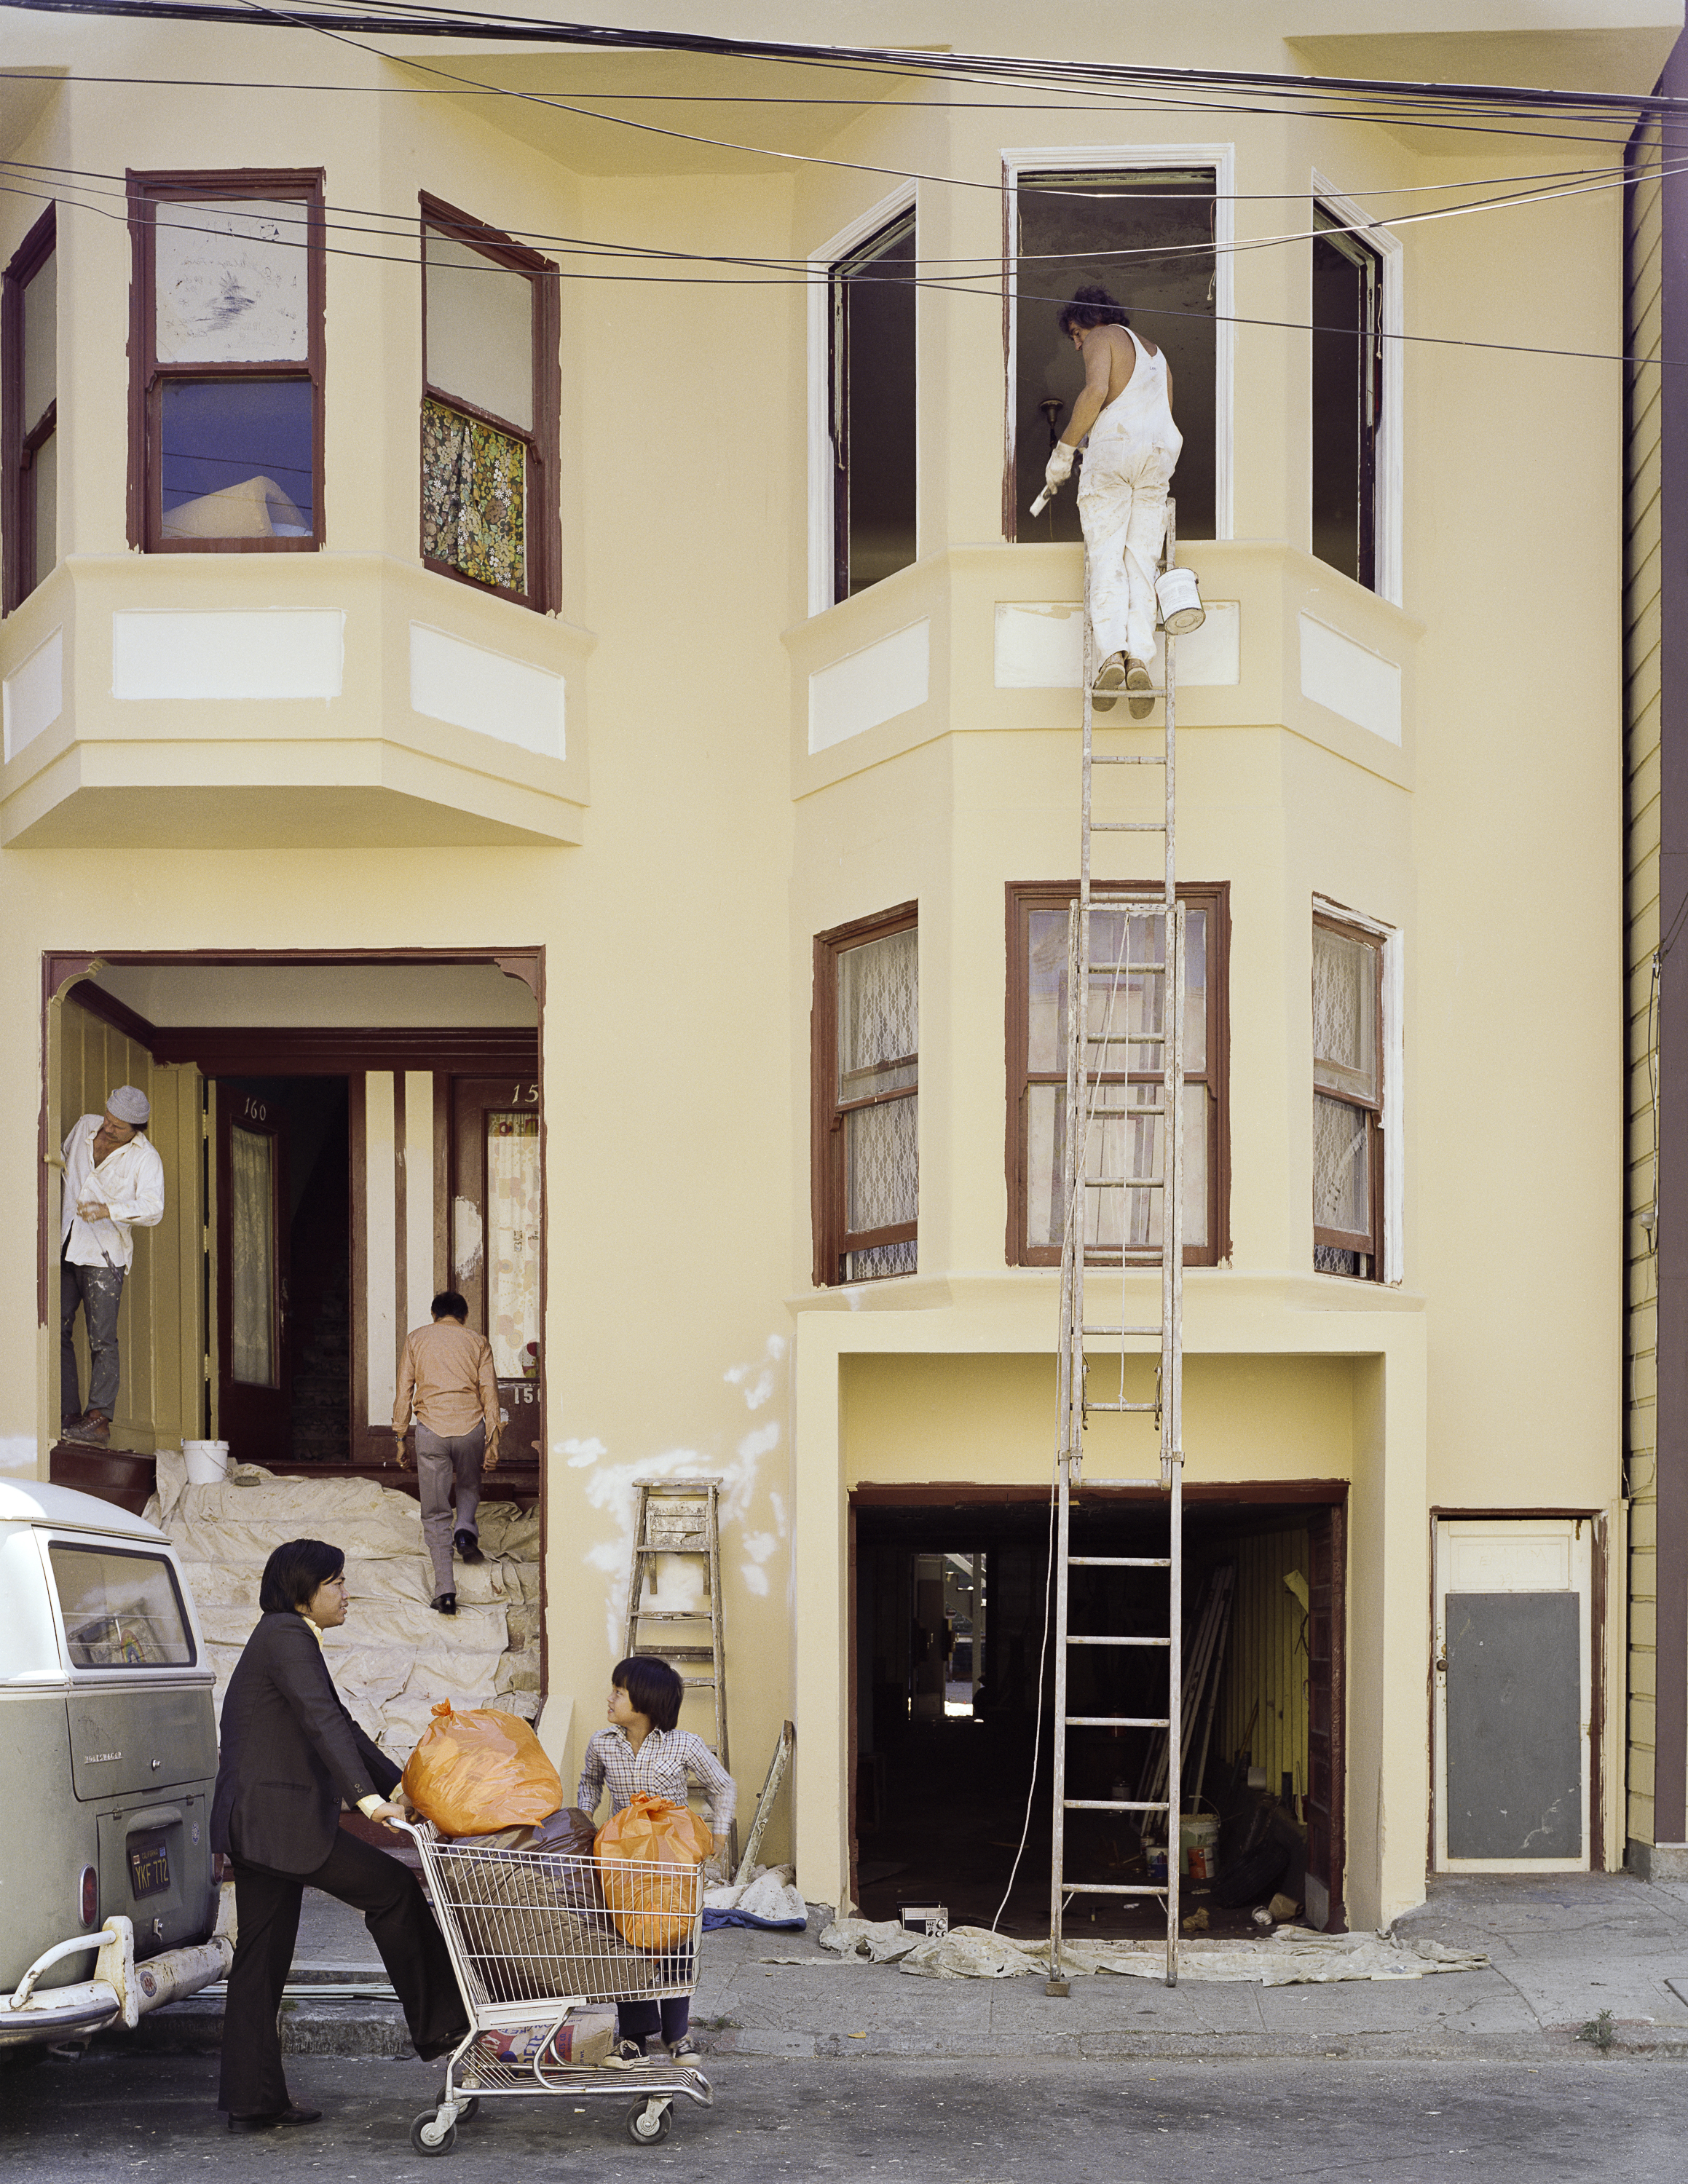 JANET DELANEY Eviction, 158-160 Langton Street, 1980 Archival Pigment Print, 2016 16 x 20 inches, edition of 5 20 x 24 inches, edition of 2 30 x 40 inches, edition of 2